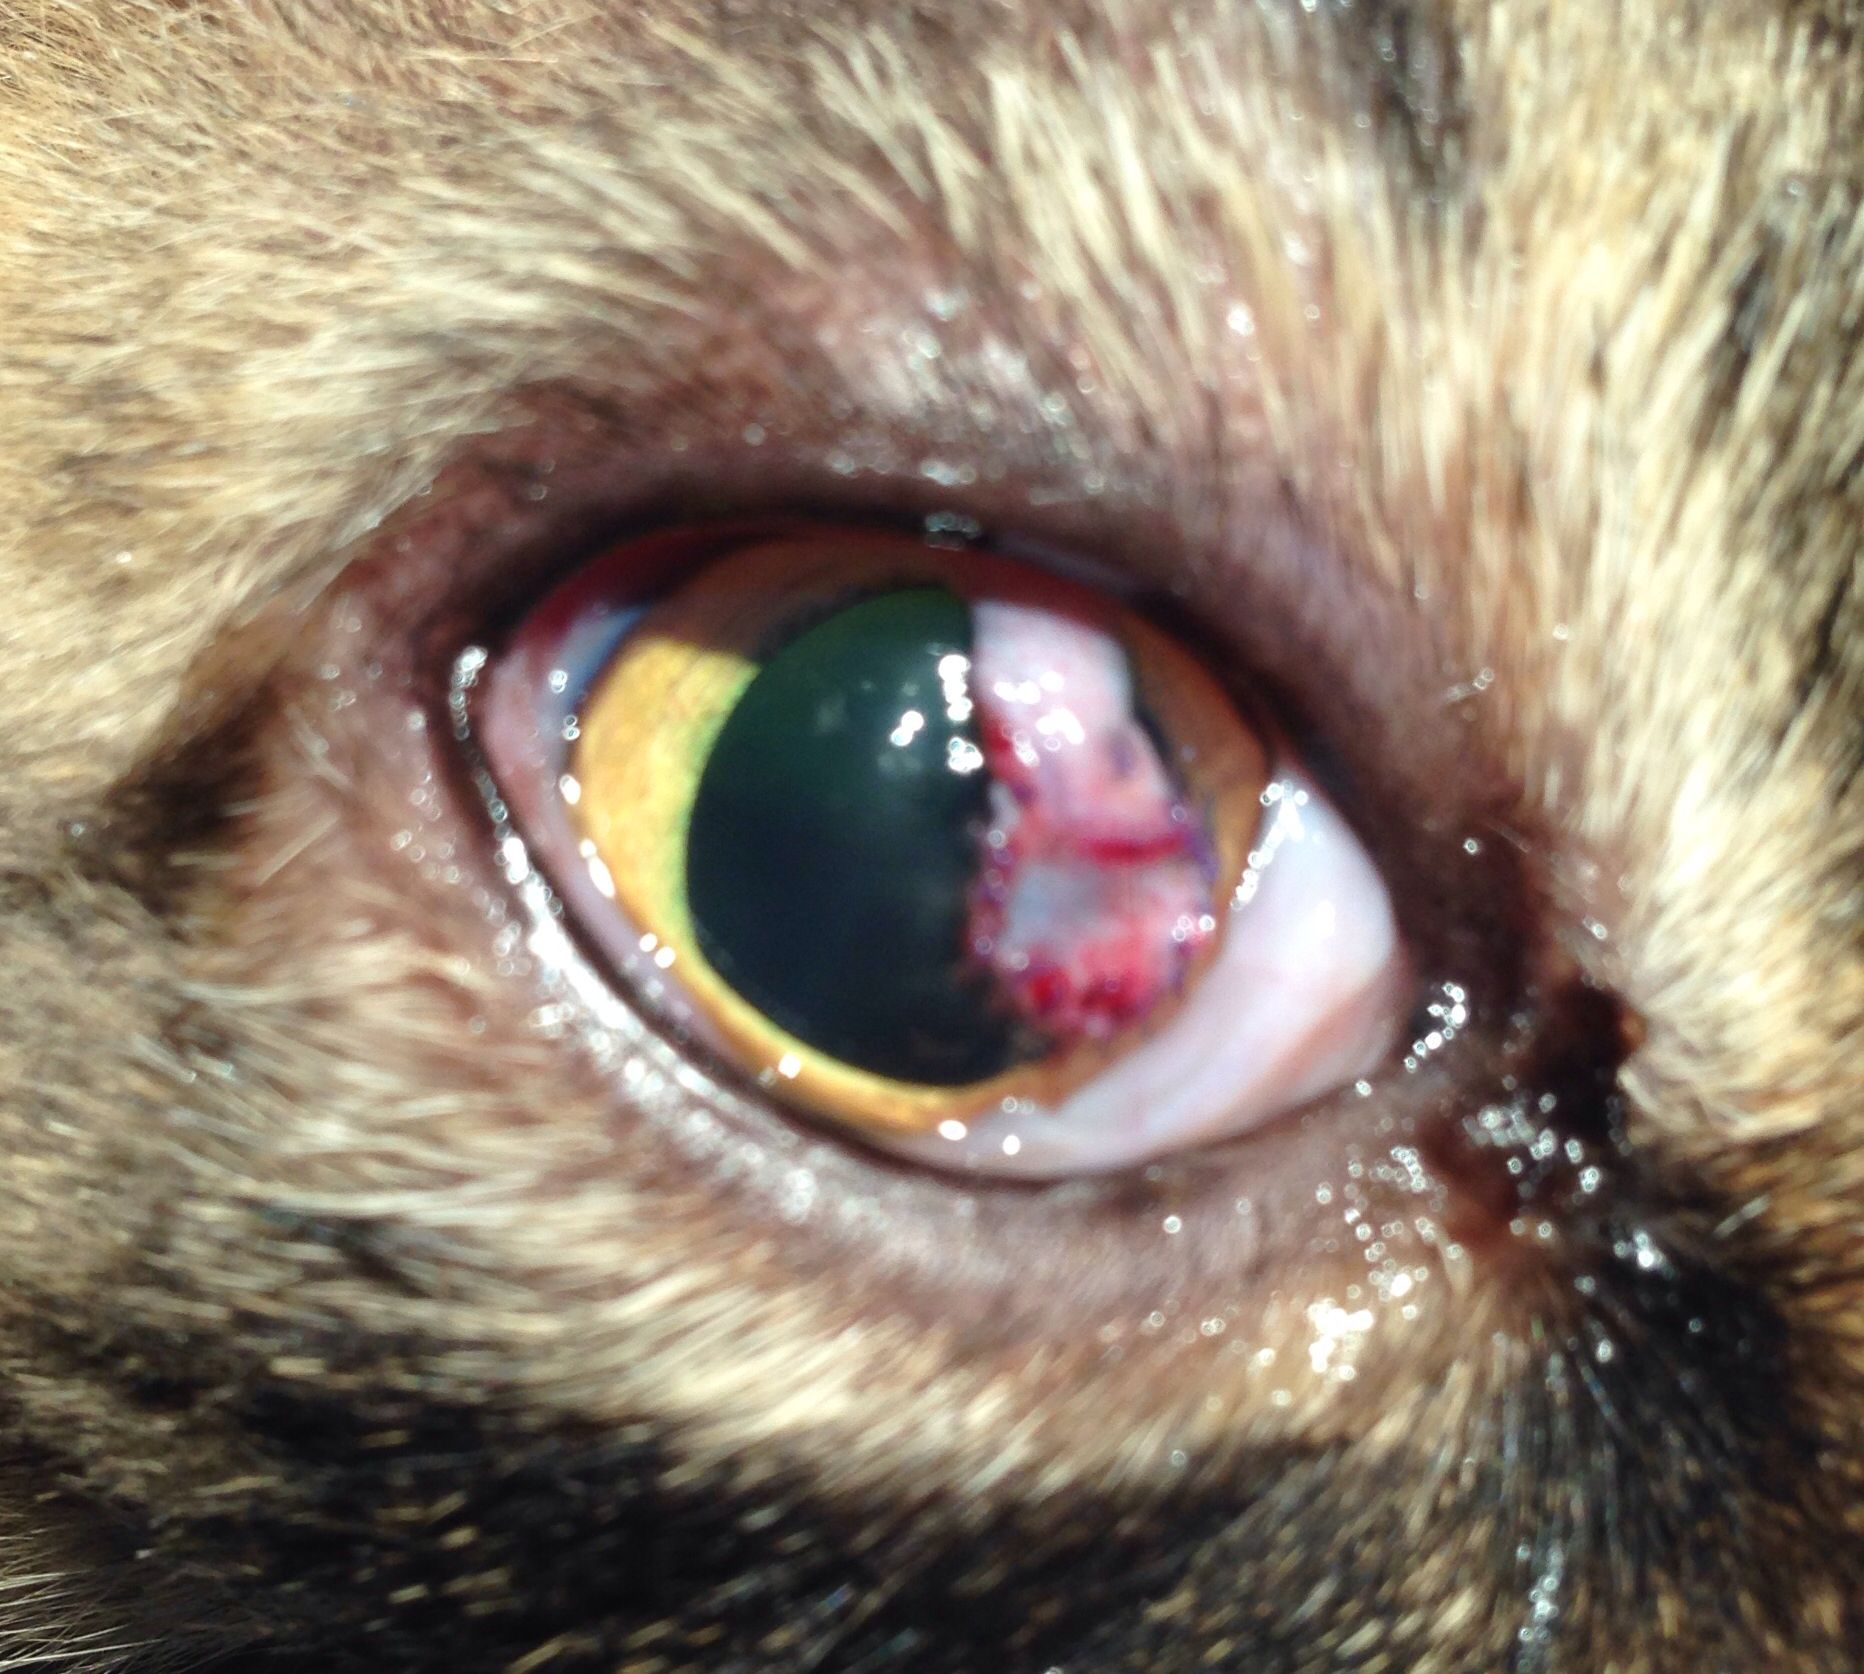 Conjunctival pedicle flap following removal of corneal